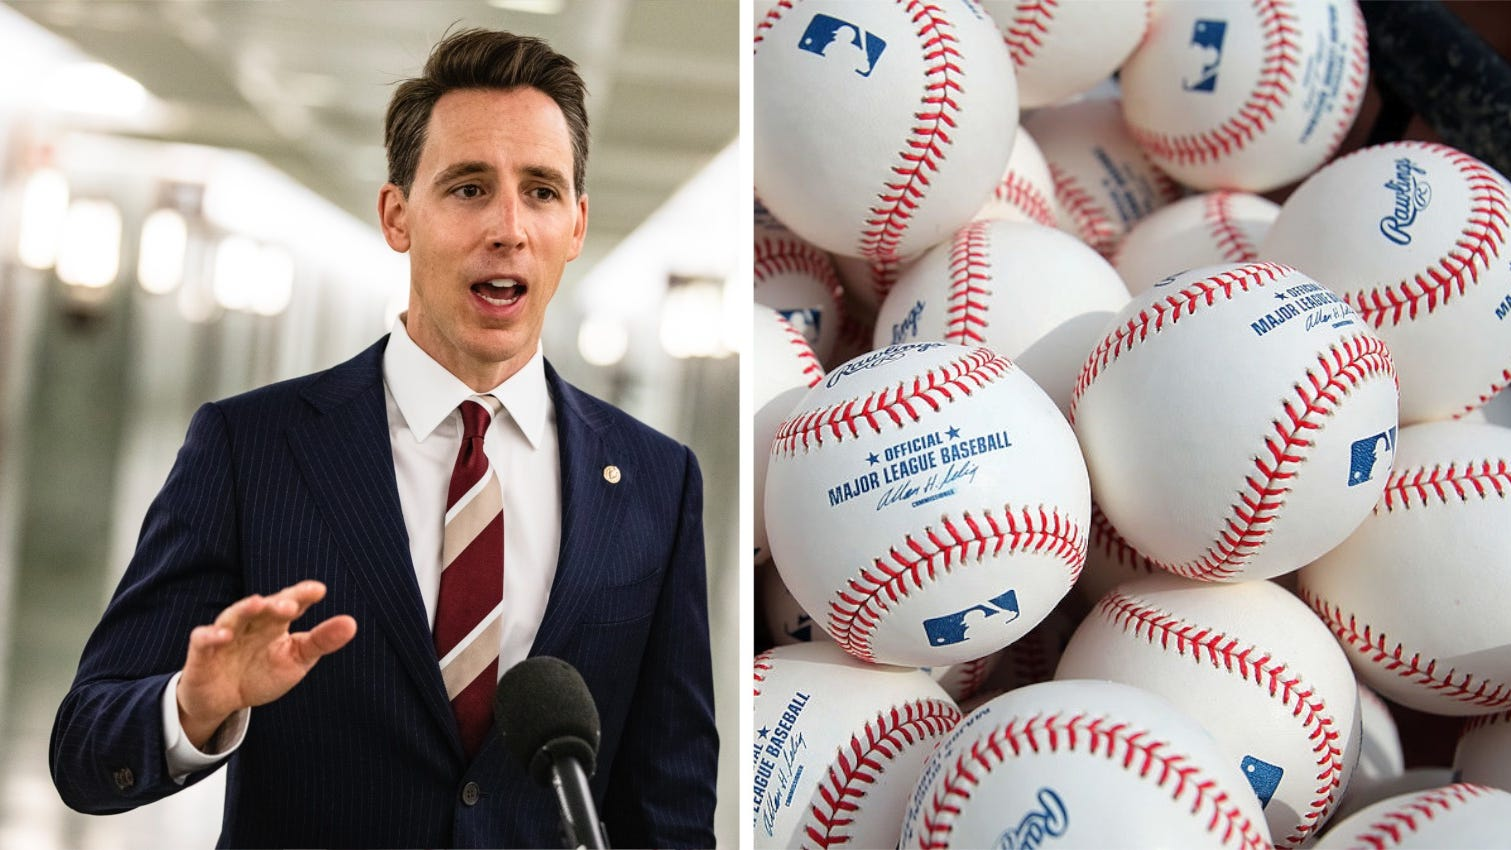 Sen. Hawley to retaliate against MLB by introducing bill to end antitrust exemption